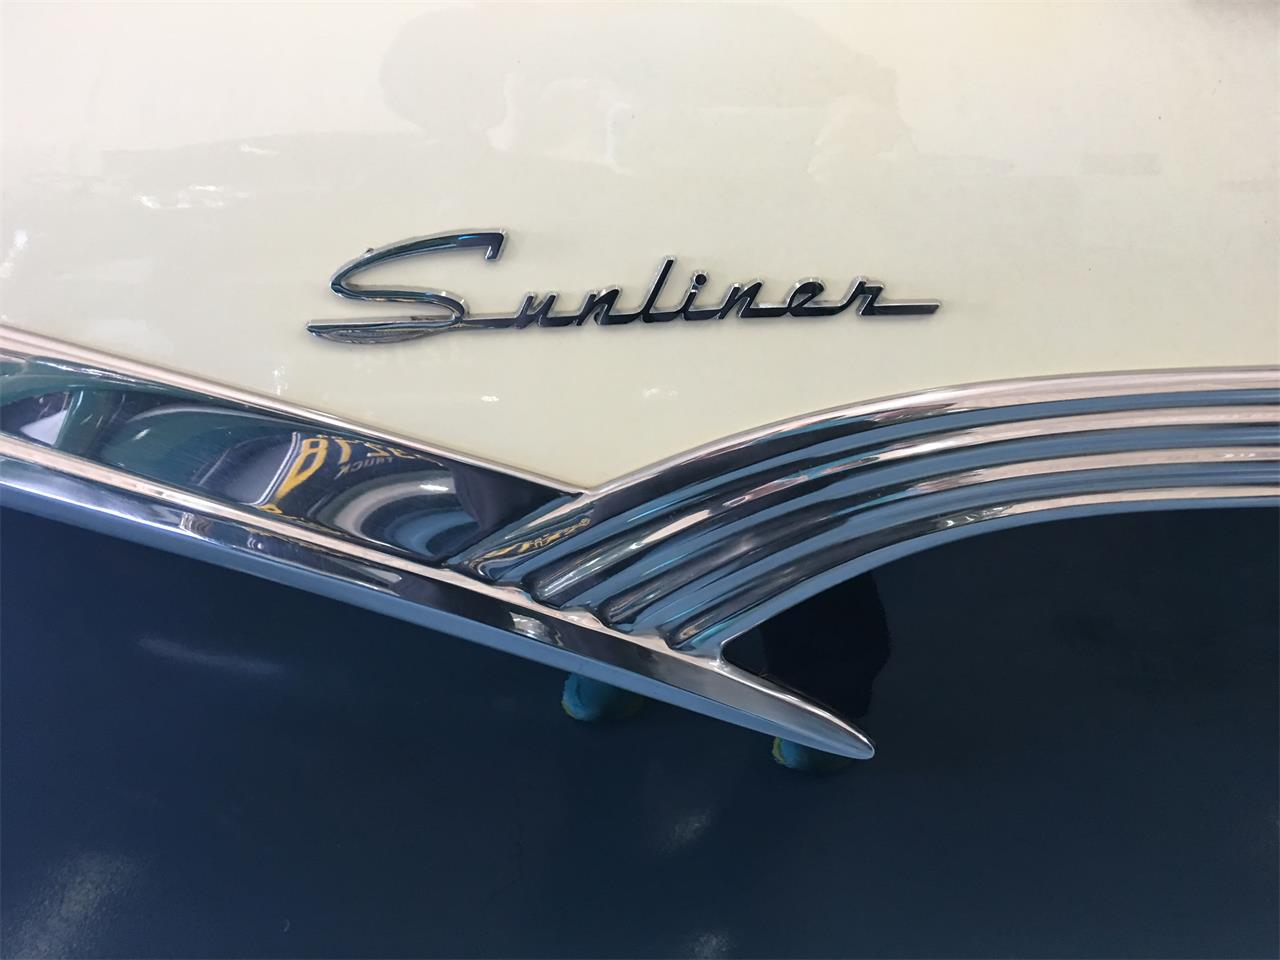 1956 Ford Fairlane Sunliner (CC-1311318) for sale in WEATHERFORD, Texas